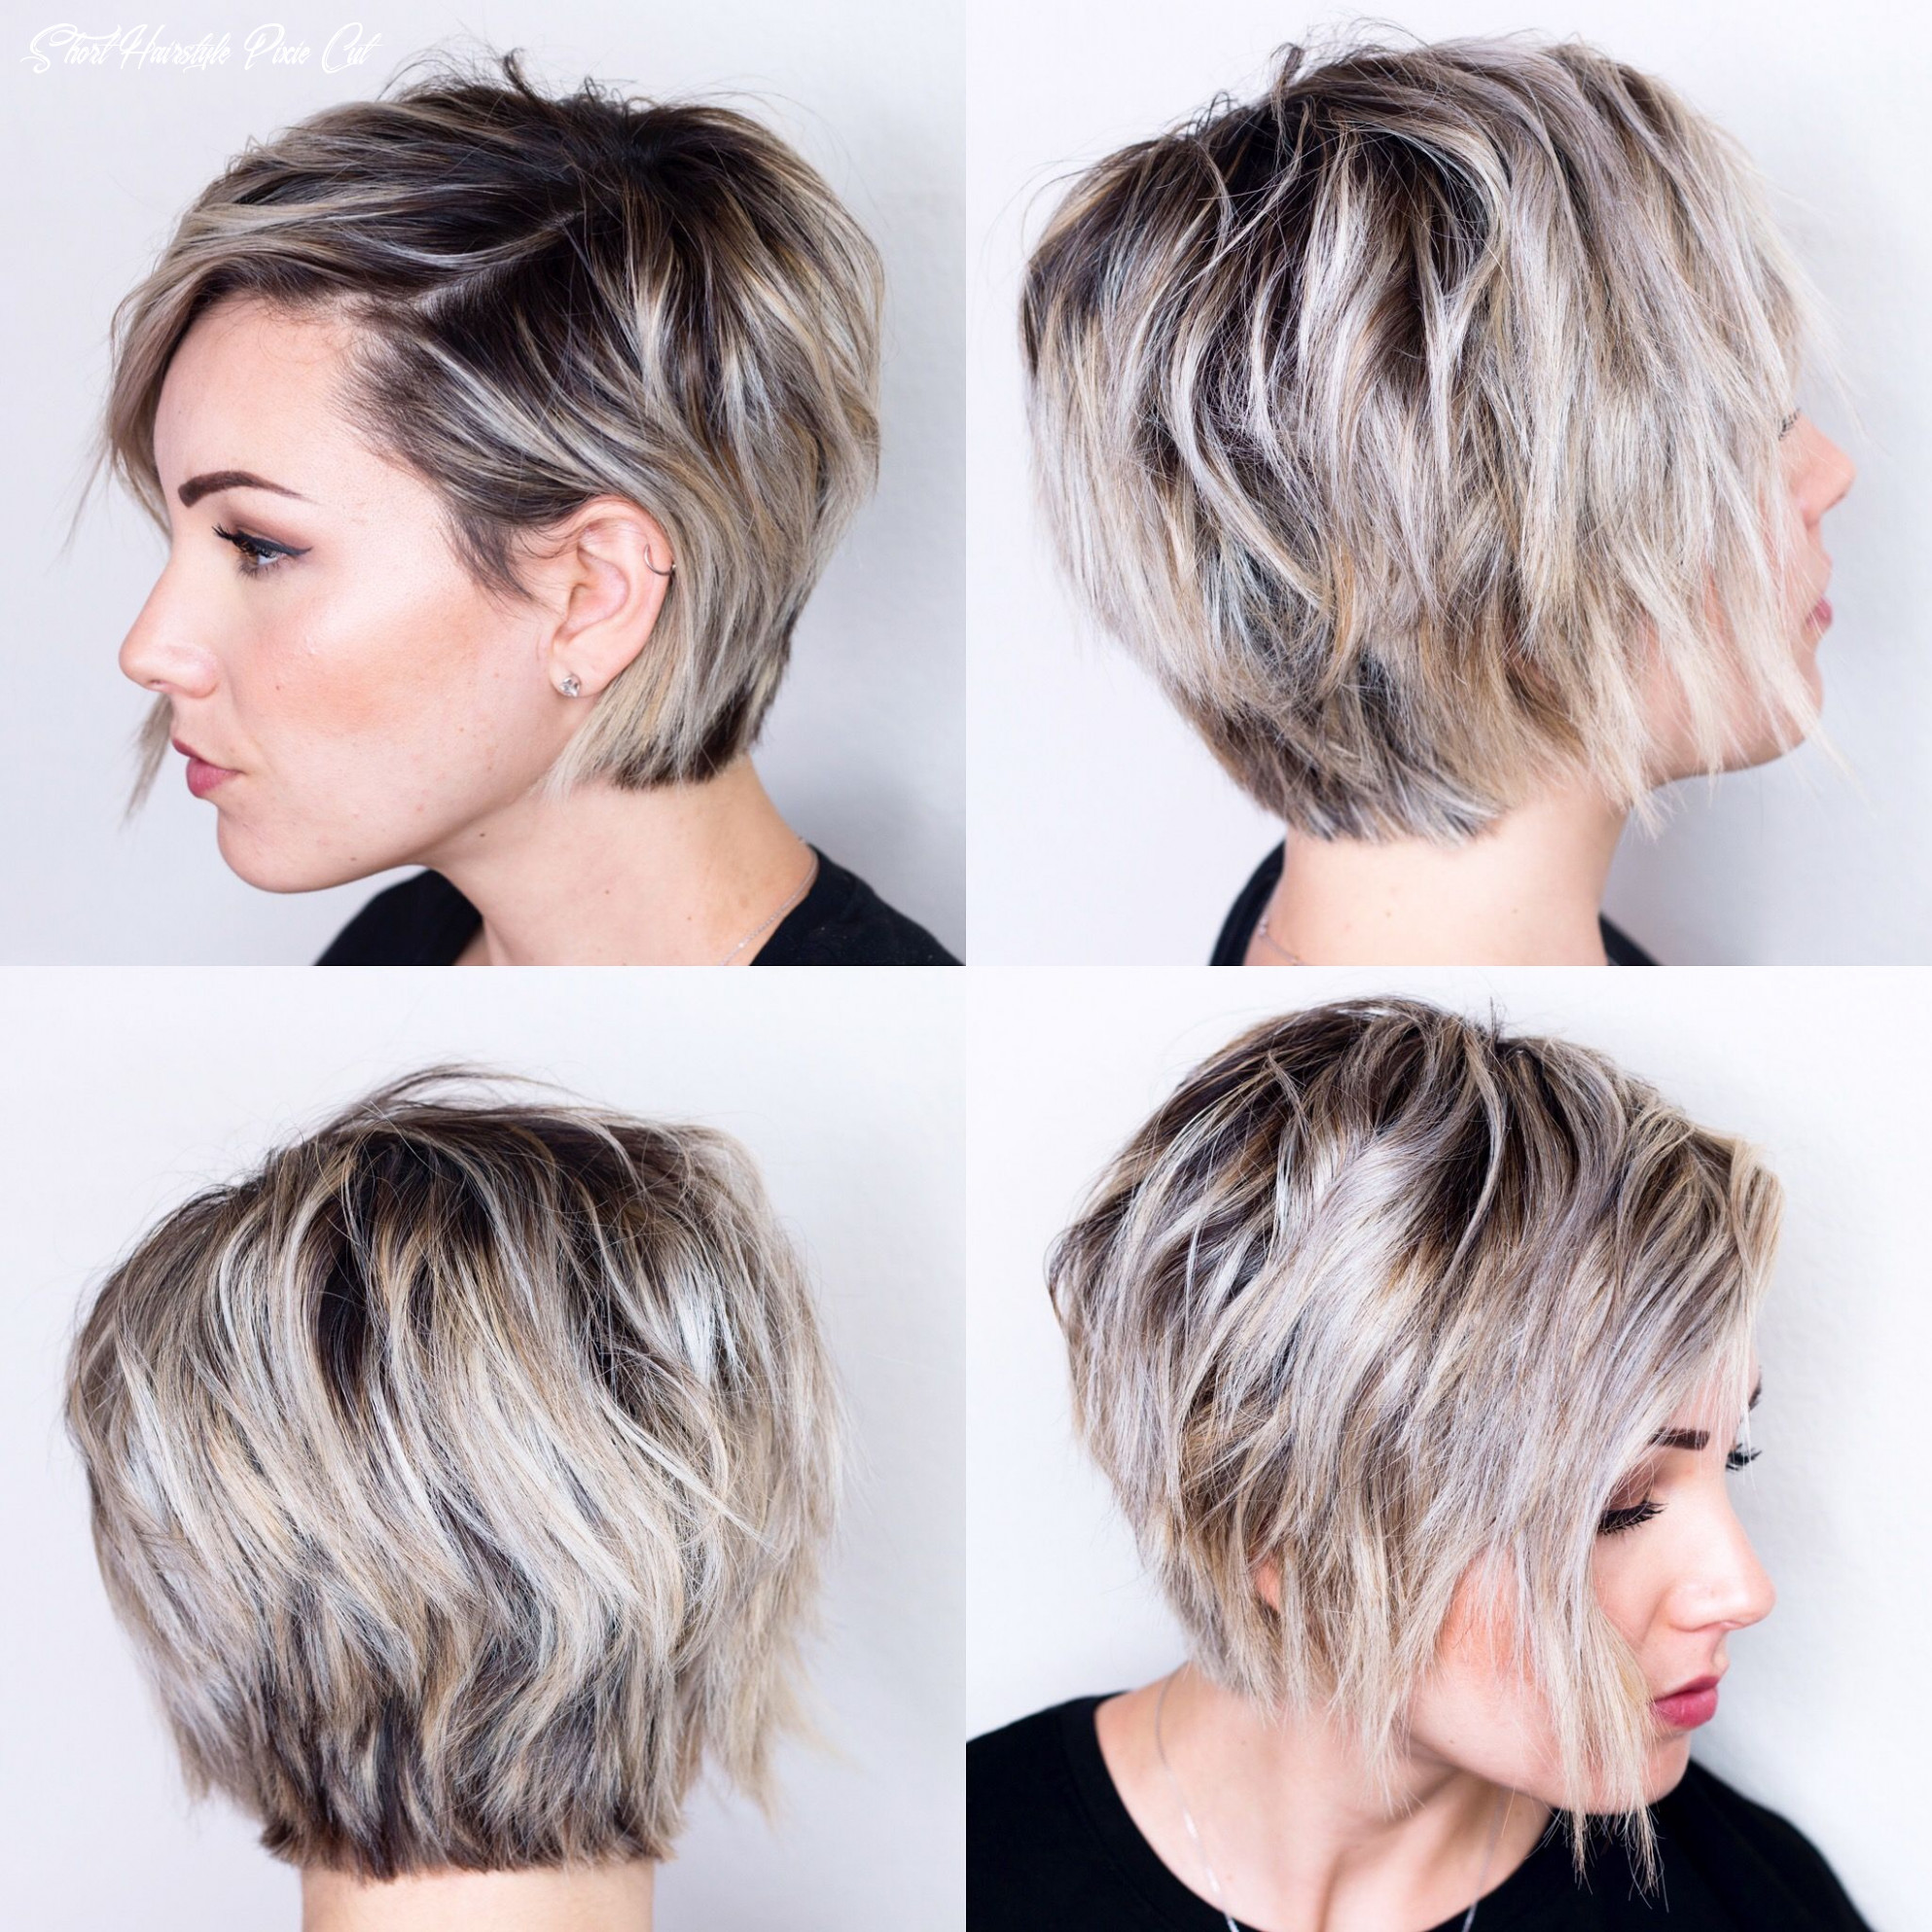 9 view of short hair | oval face hairstyles, growing out short